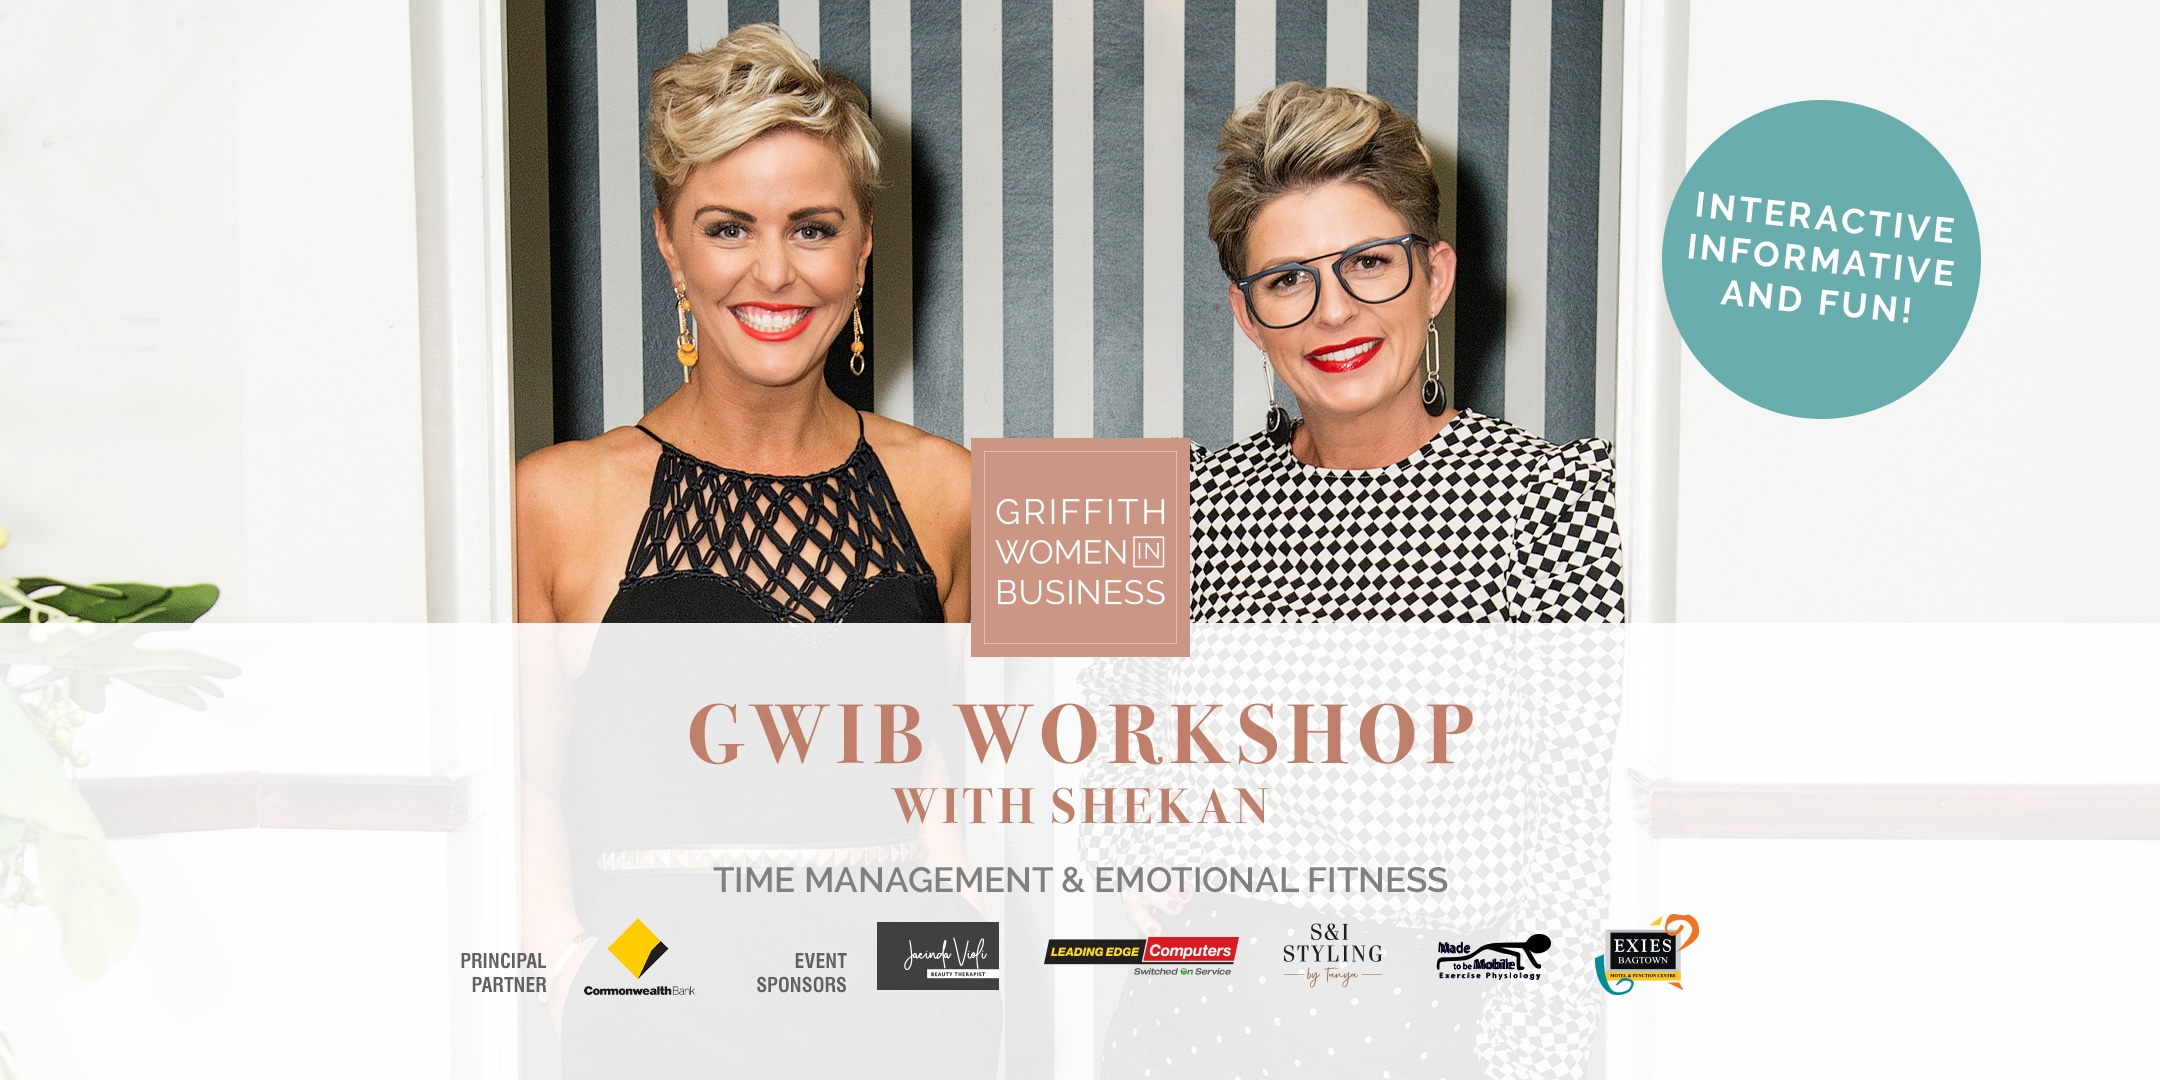 GWIB Workshop with Shekan |